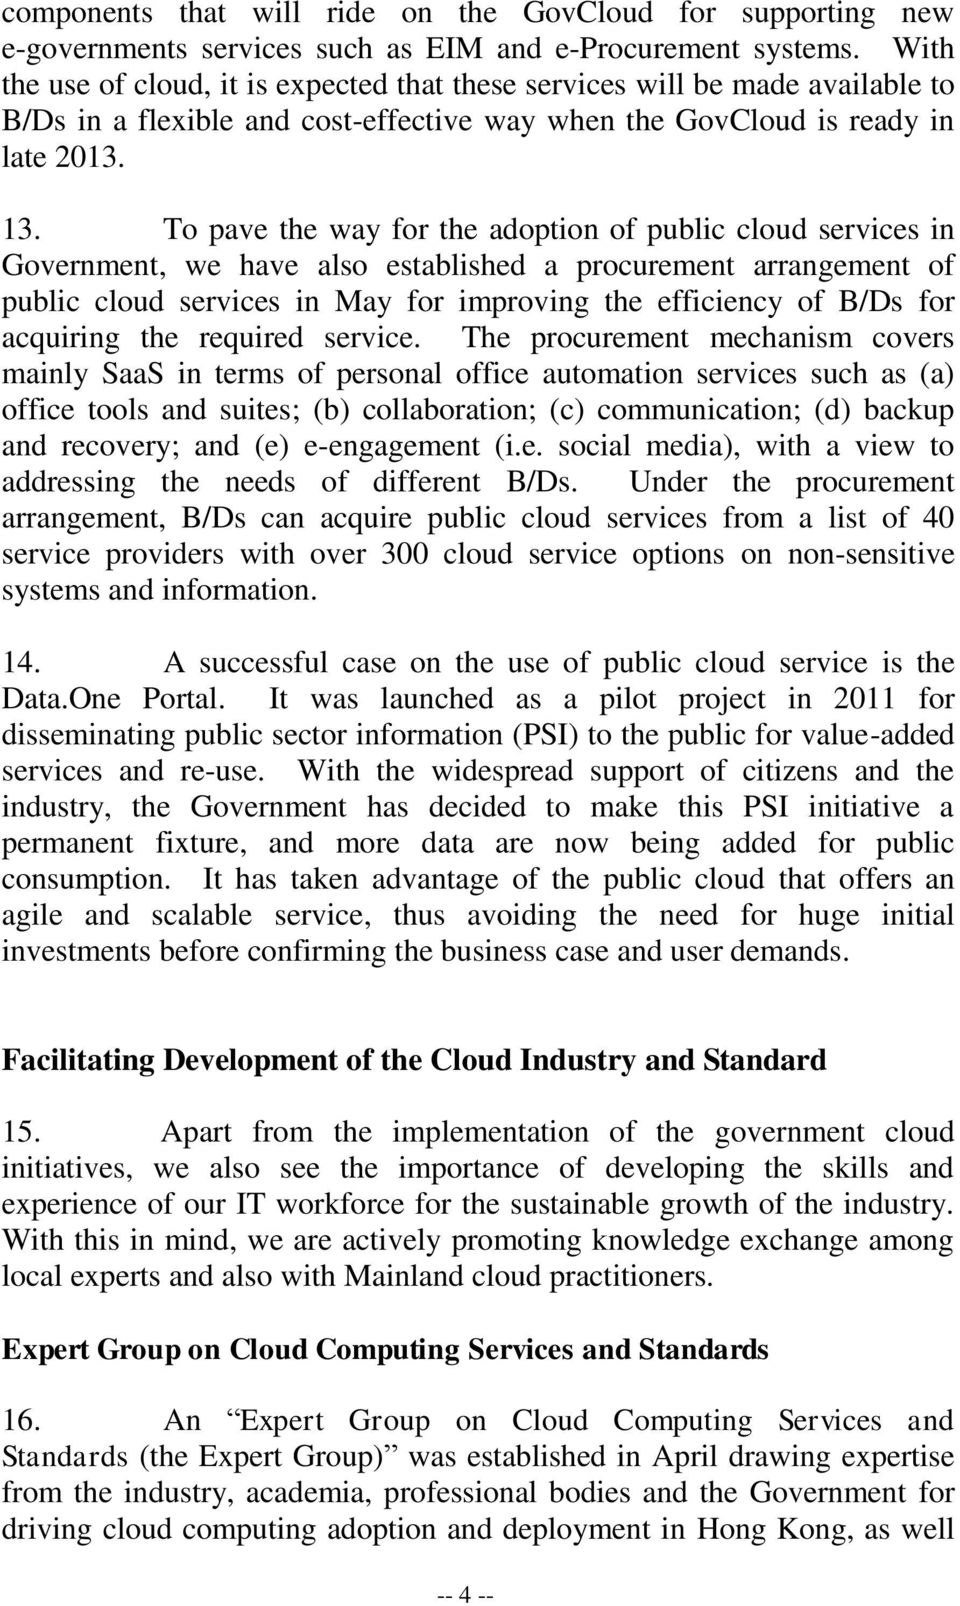 To pave the way for the adoption of public cloud services in Government, we have also established a procurement arrangement of public cloud services in May for improving the efficiency of B/Ds for